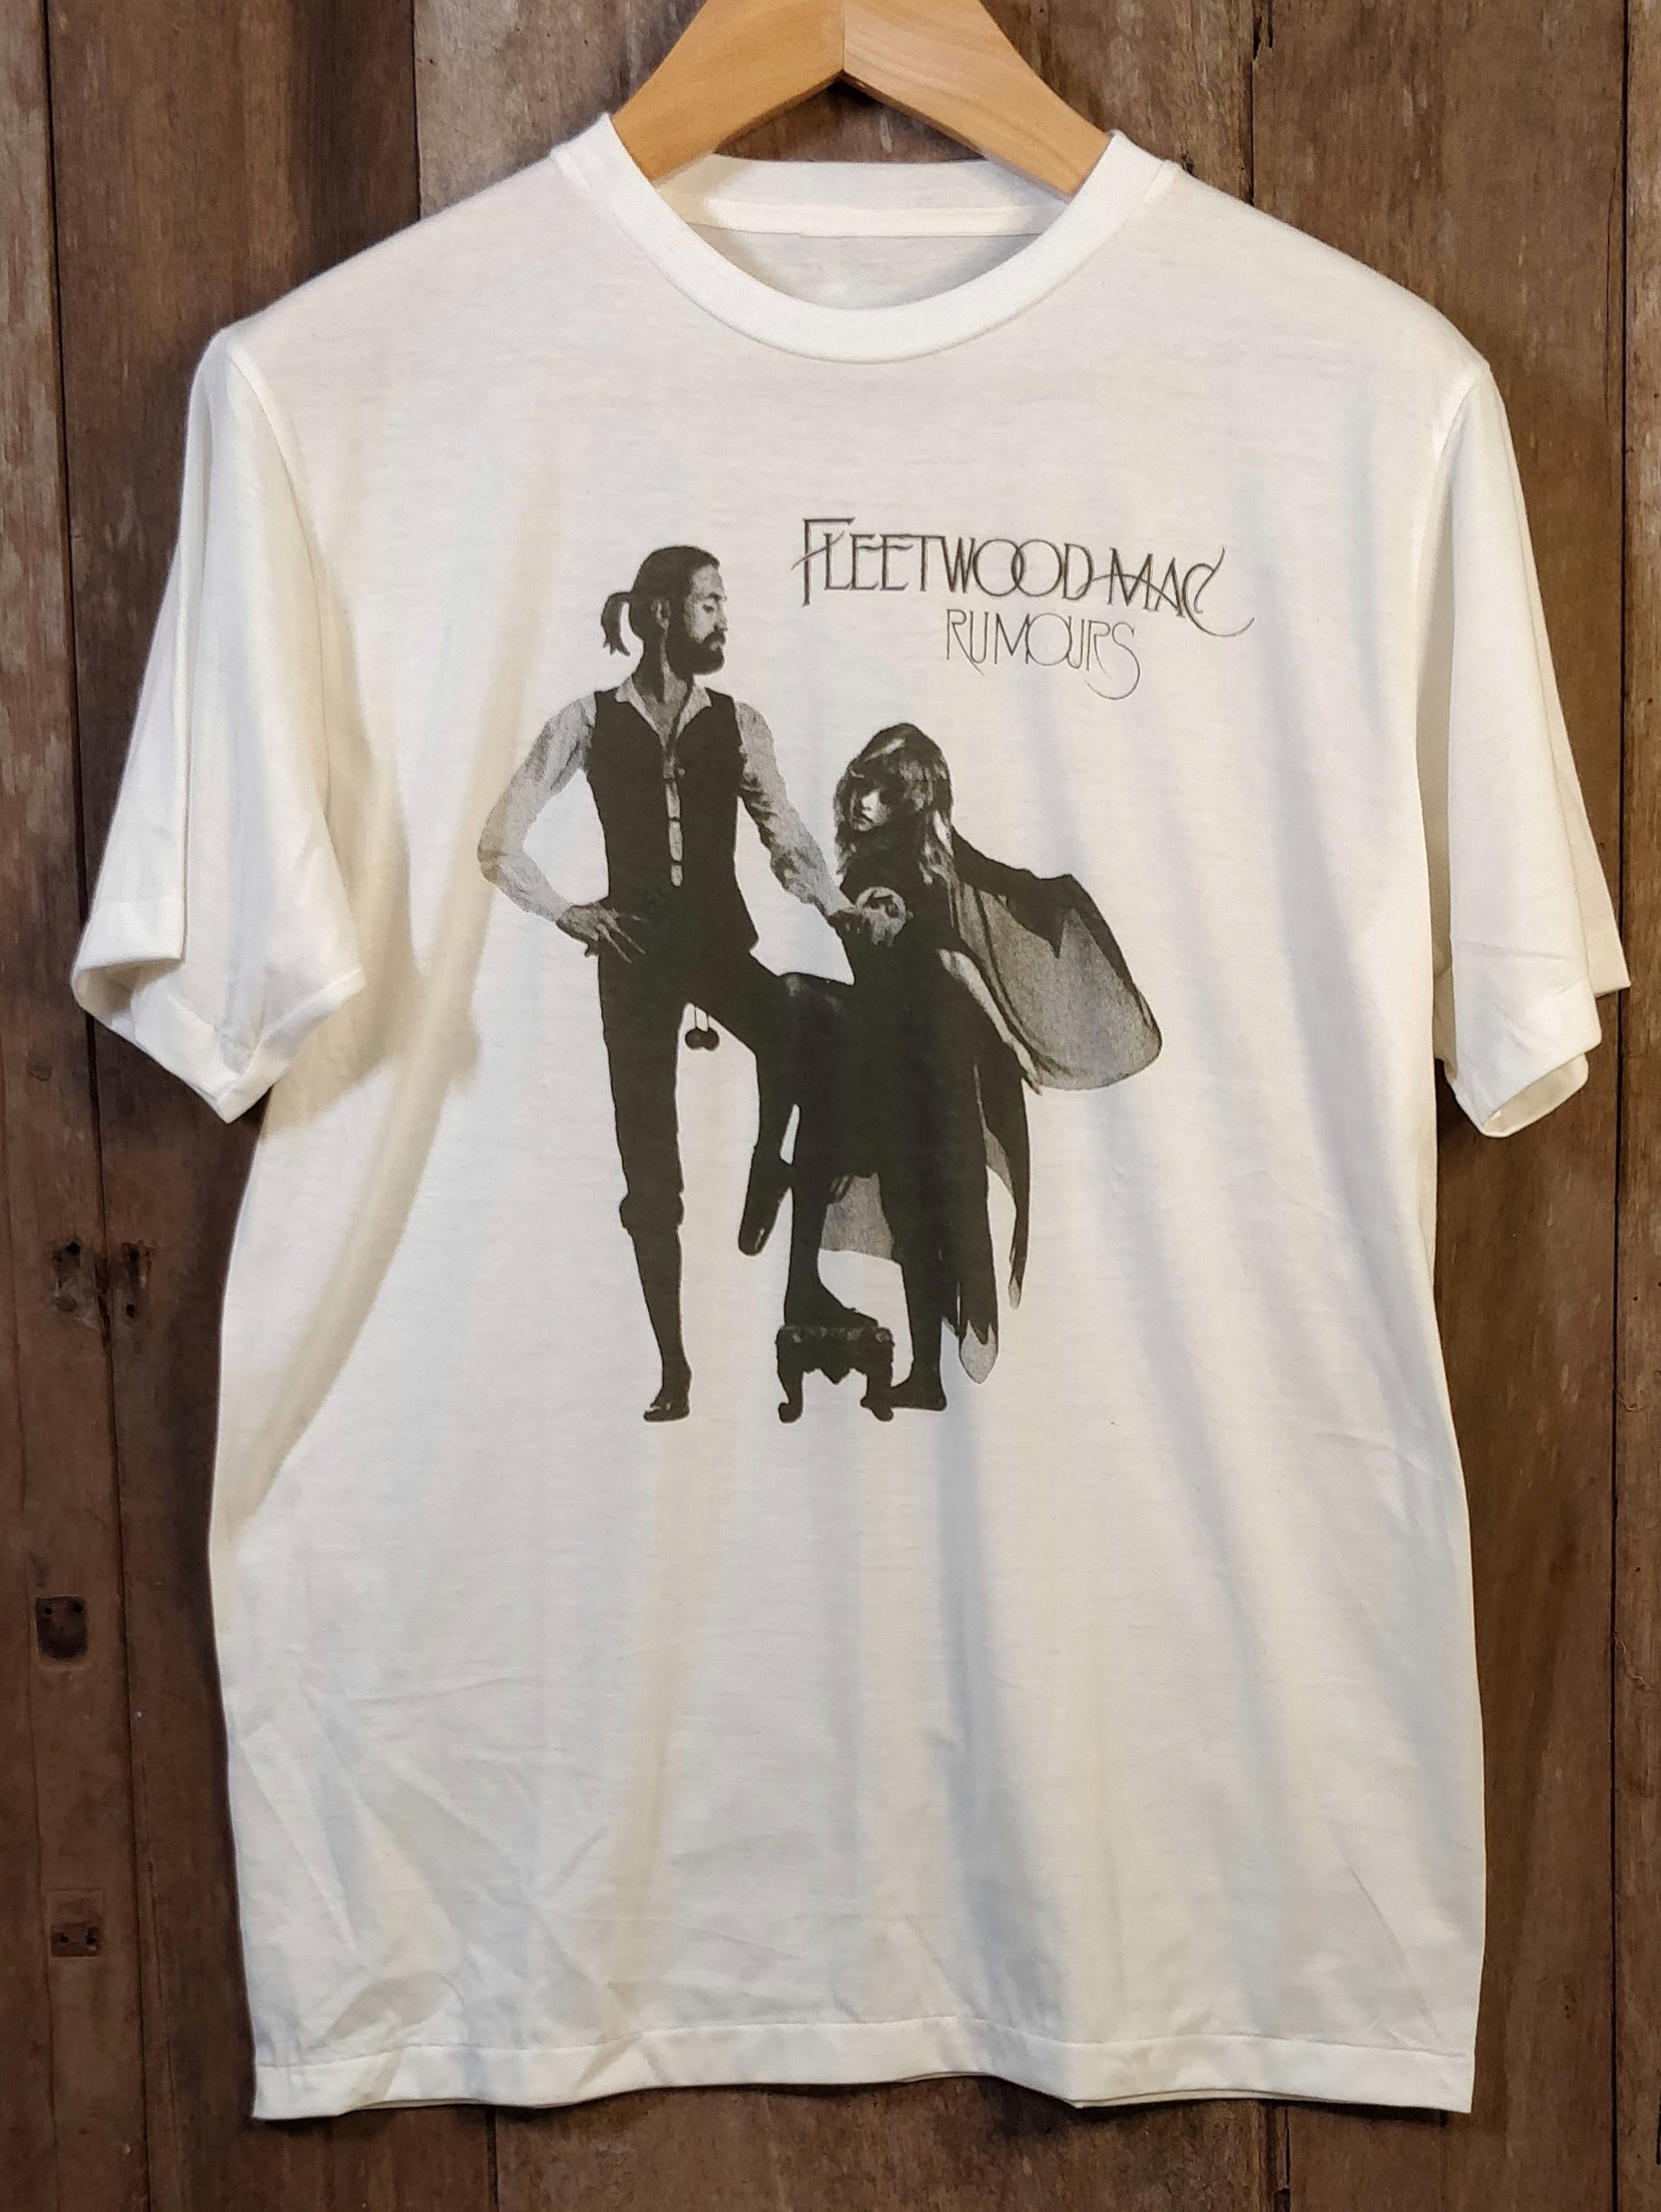 FLEETWOOD MAC 100% Cotton New Vintage Band T Shirt